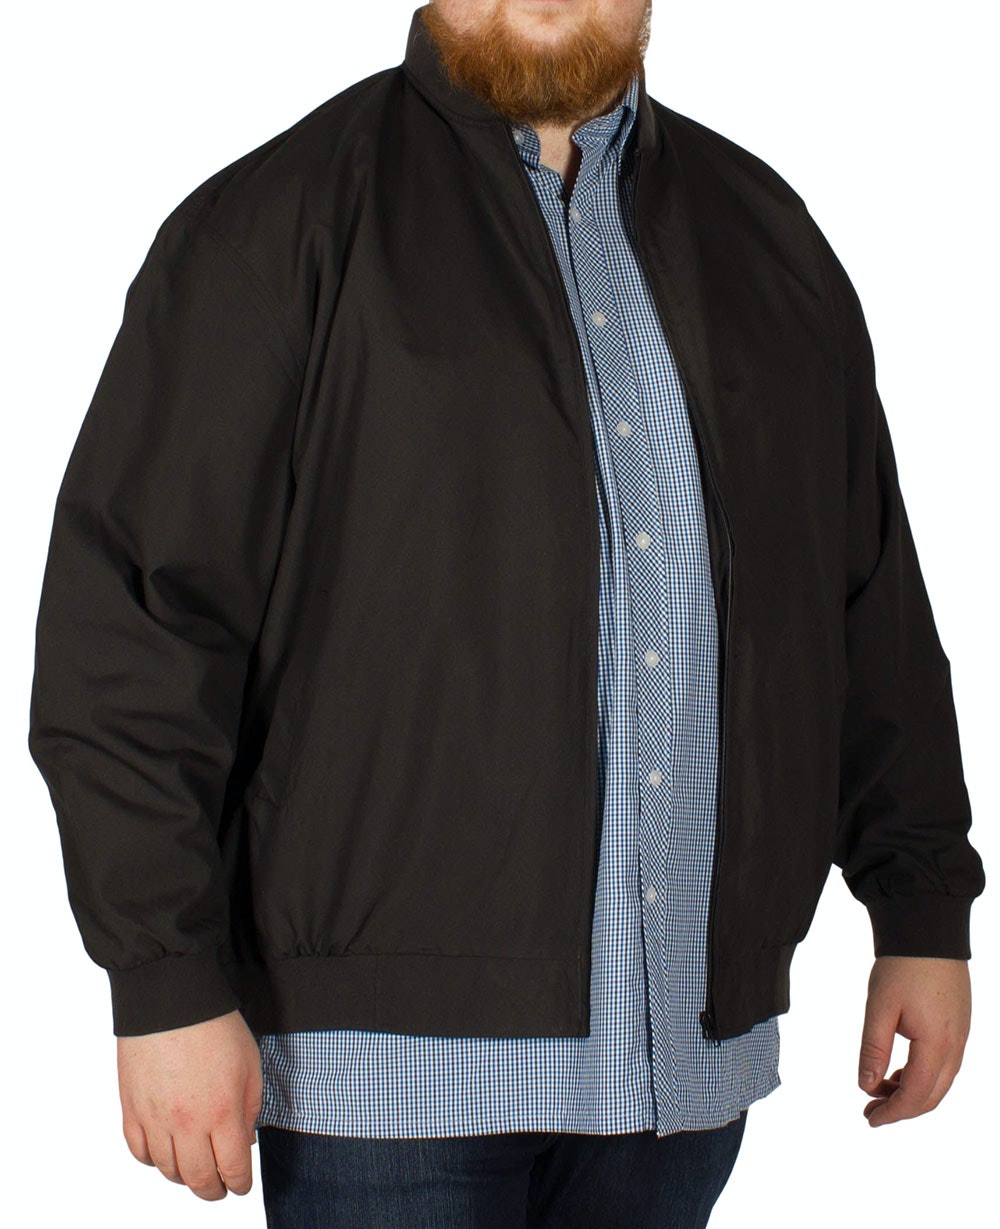 Espionage Lightweight Oxford Jacket